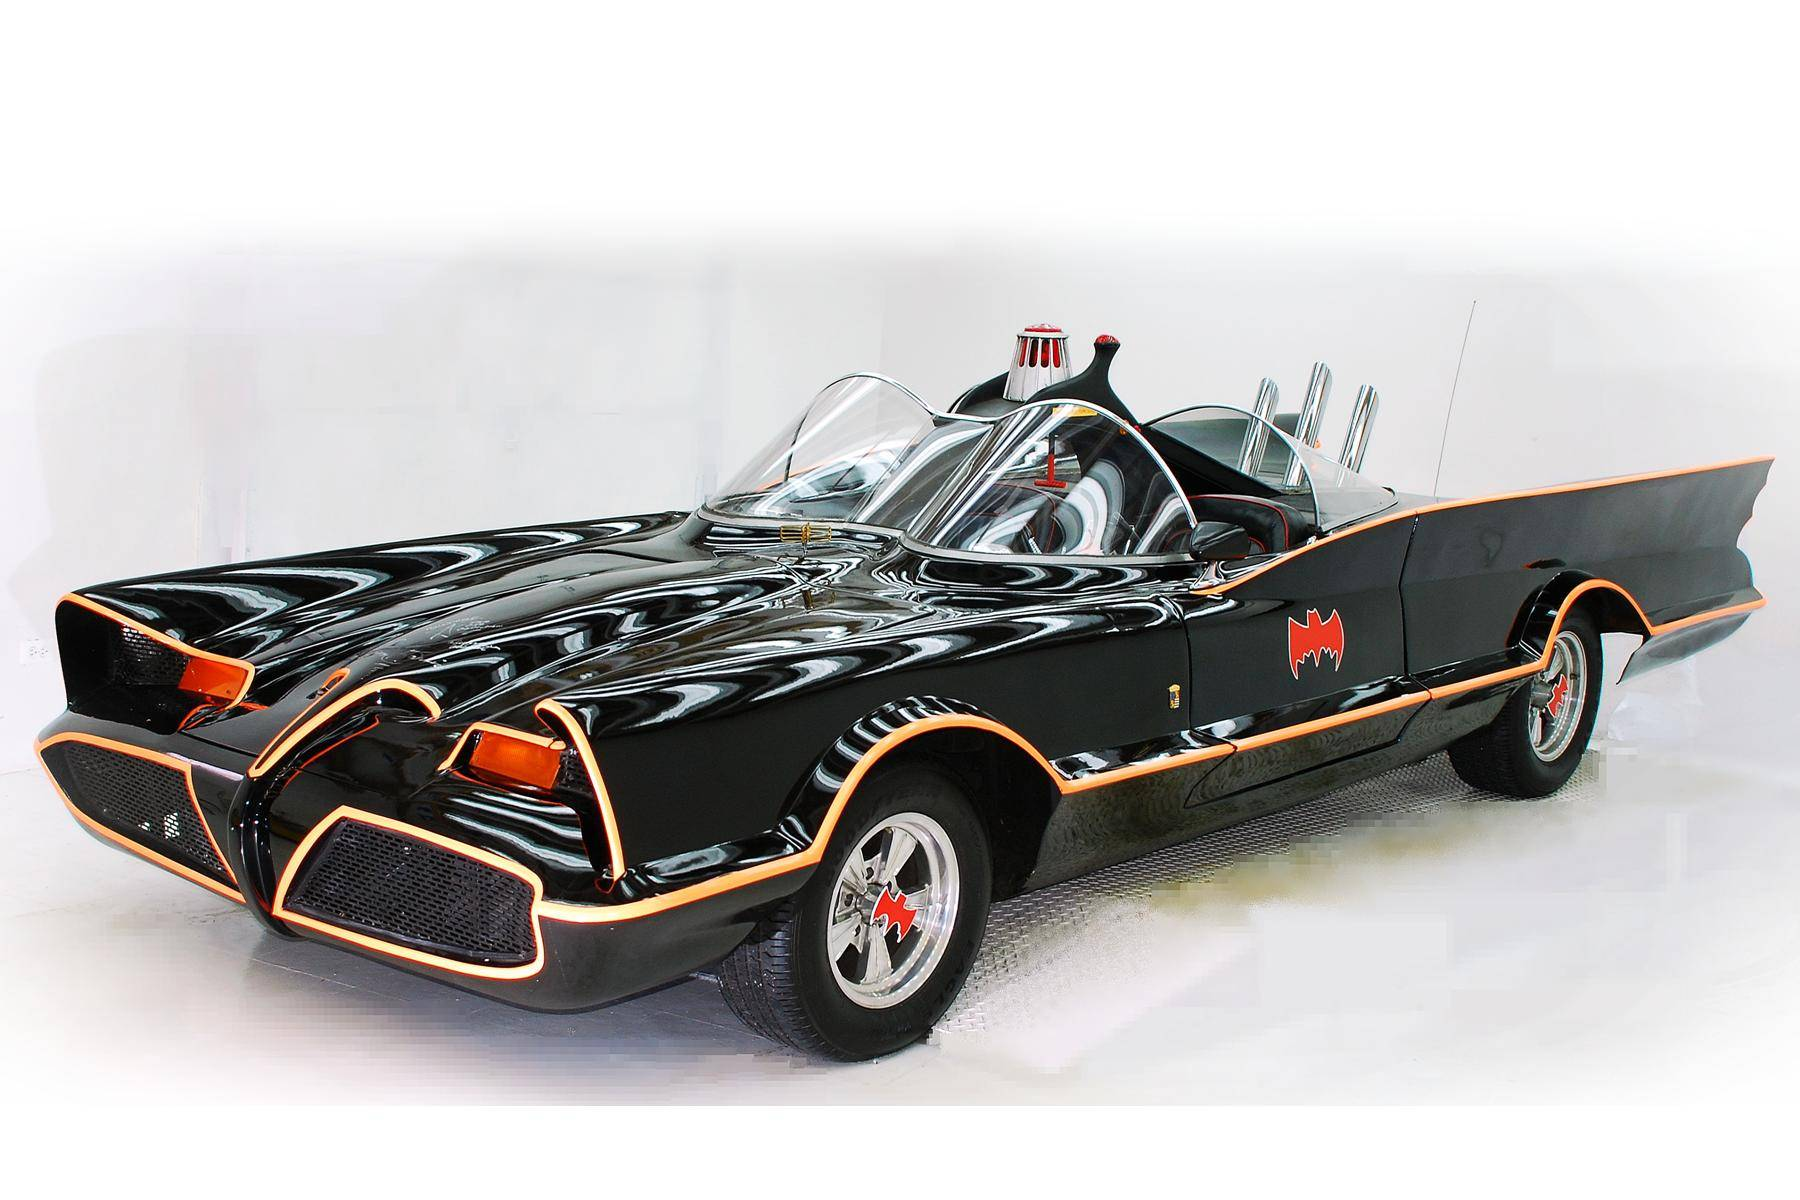 the Volo Auto Museum will bring its Batmobile to the June 18 Cruise night at Randhurst Village in Mount Prospect.